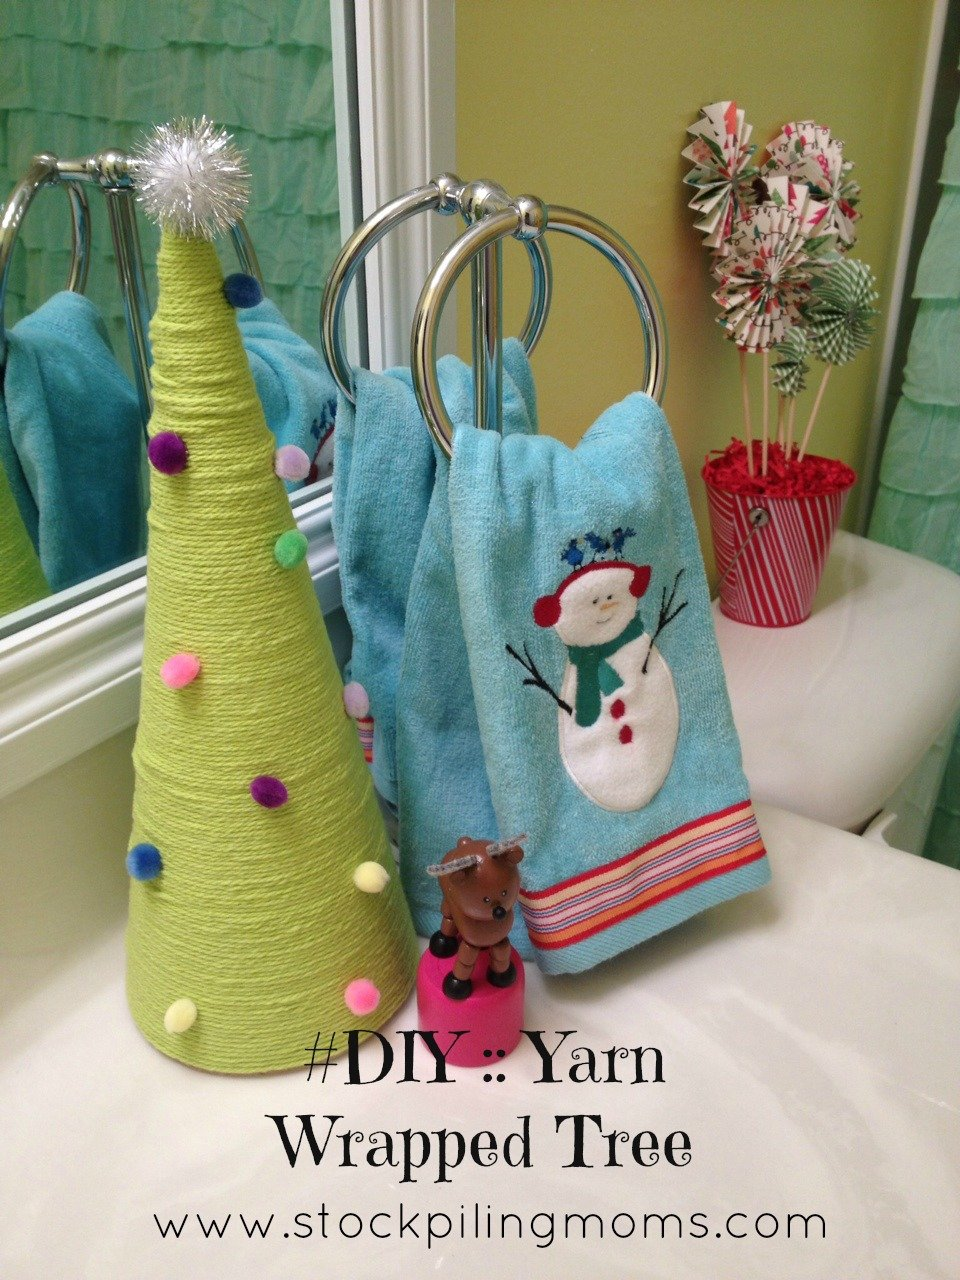 How To Make a Yarn Wrapped Tree - Inexpensive Christmas Decoration